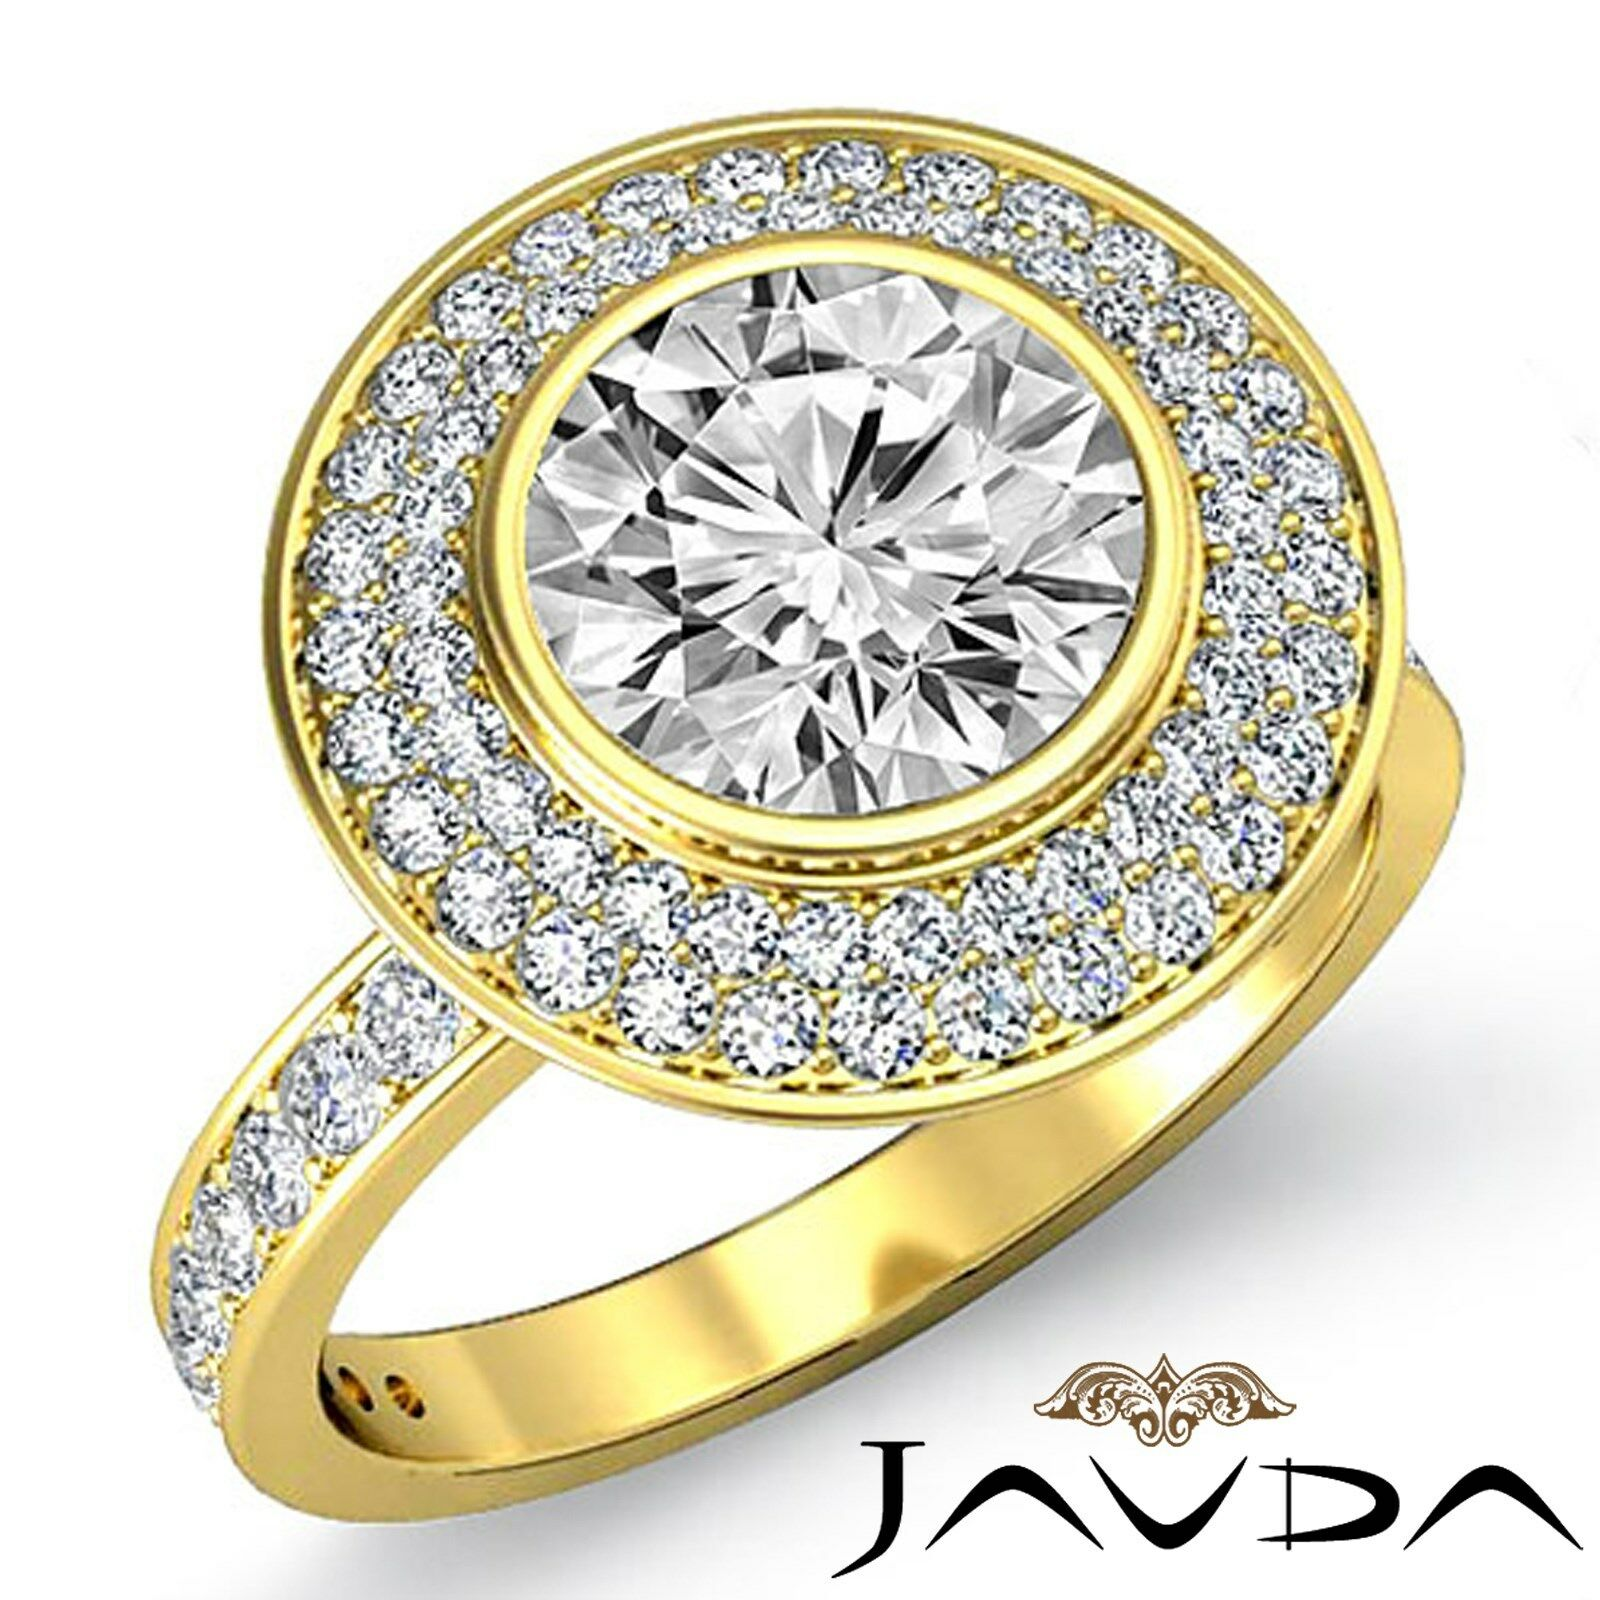 Classic Round Diamond Engagement Halo Pave Ring GIA H VS1 18k Yellow Gold 2.25ct